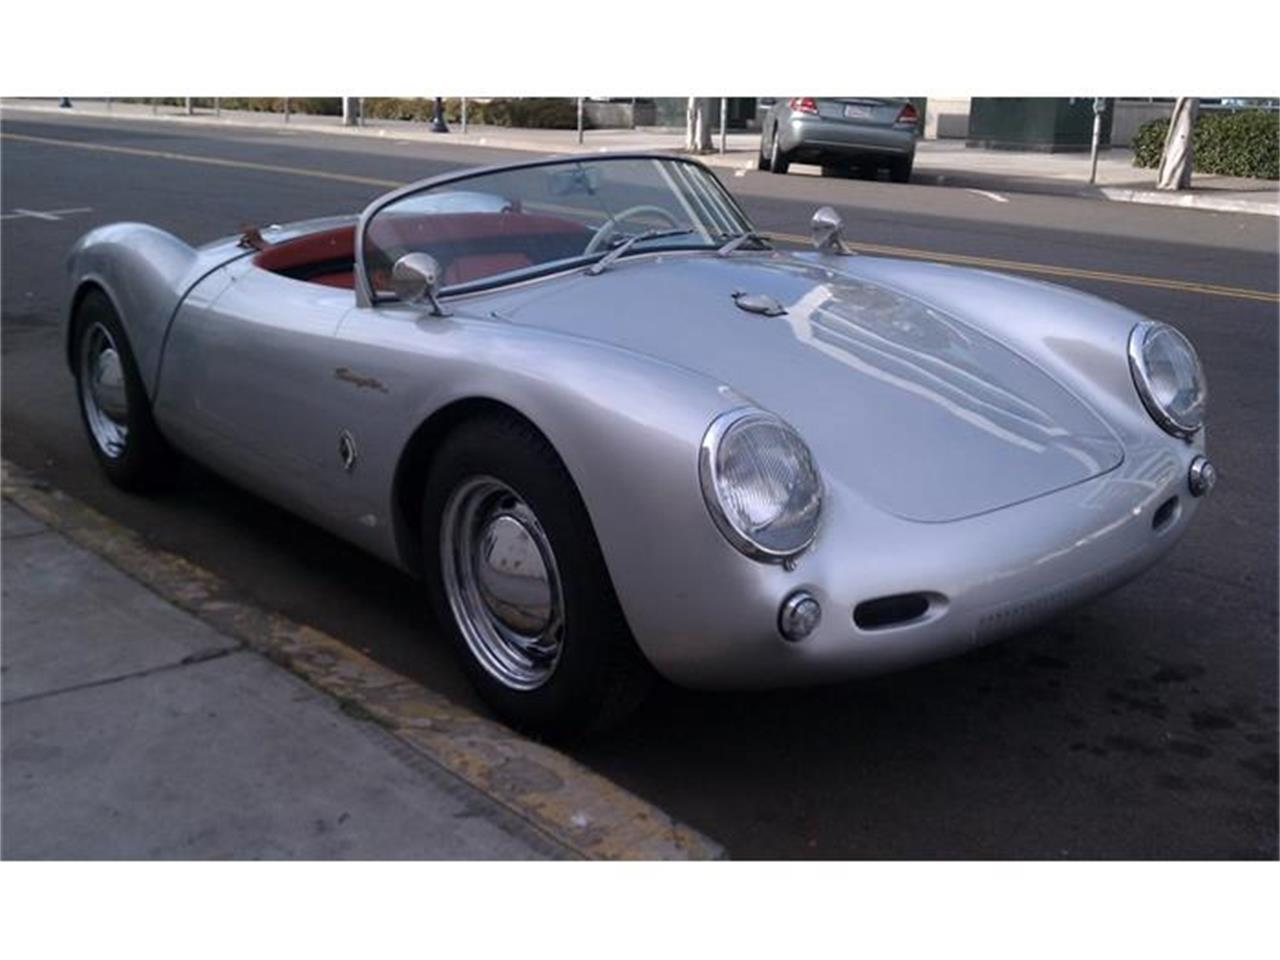 Large Picture of Classic 1955 550 Spyder Replica located in California Offered by Beverly Hills Motor Cars - AH6S